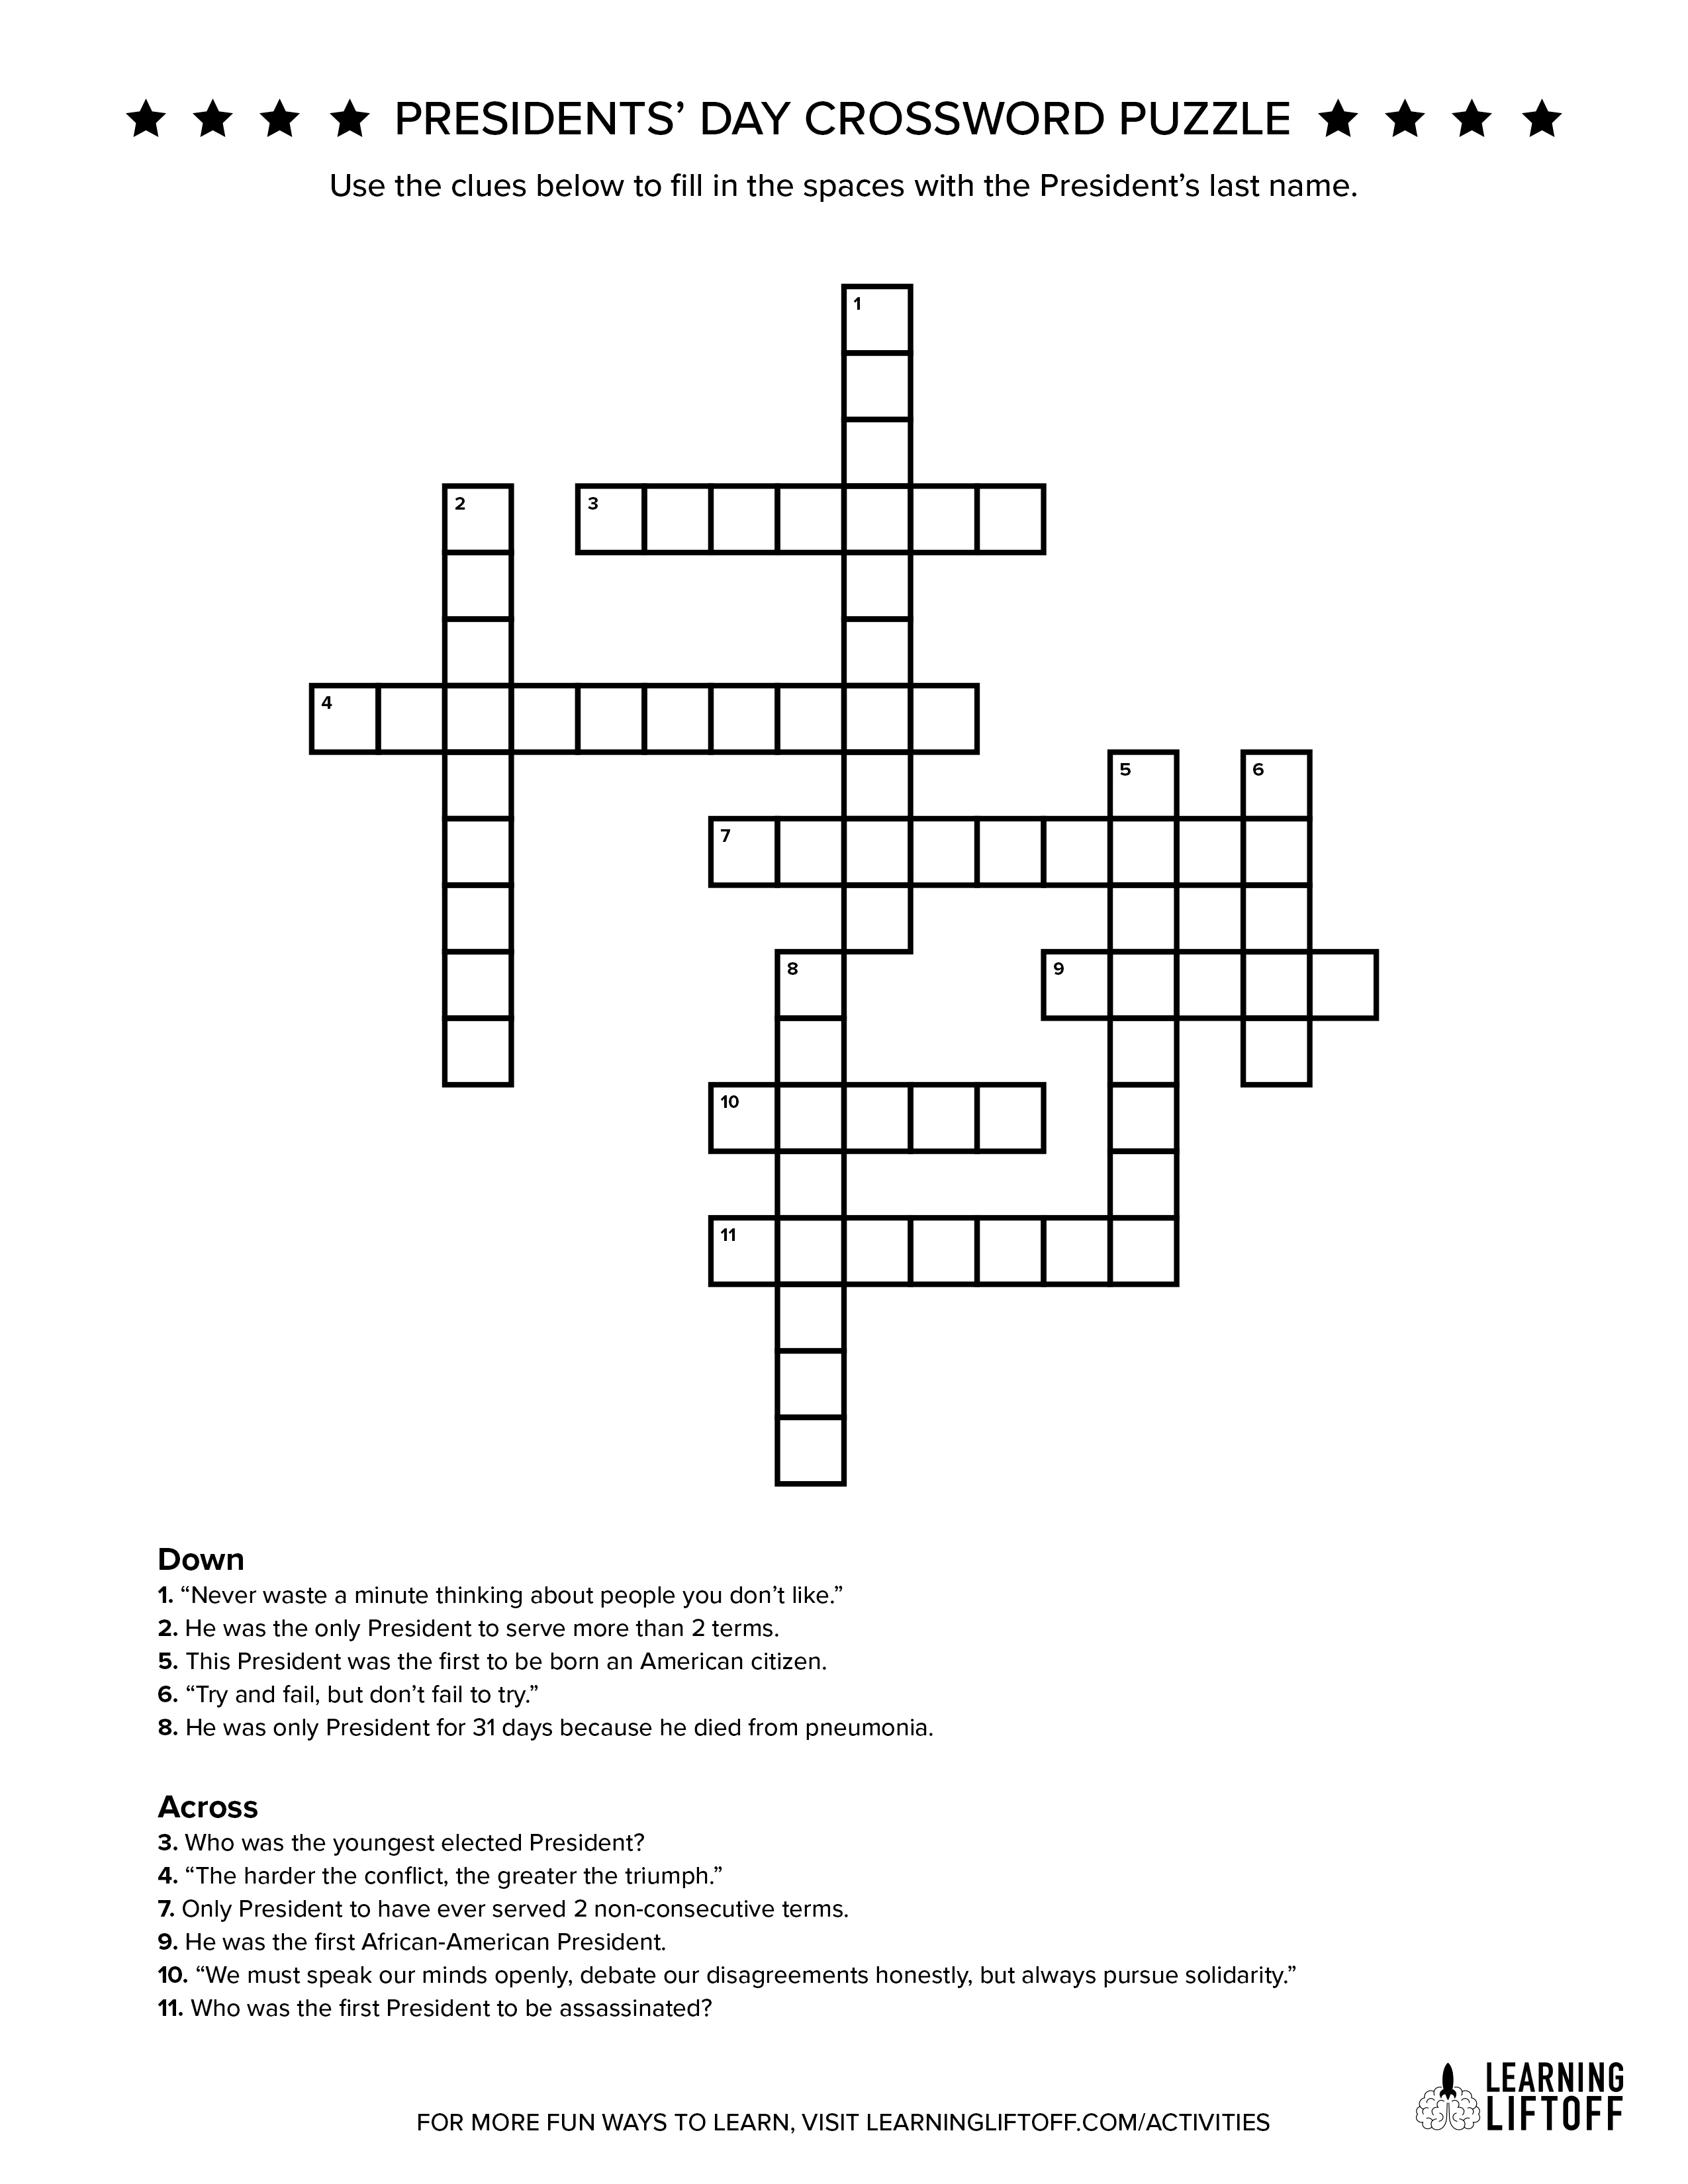 How Much Do You Know About Our U.s. Presidents? - Learning Liftoff - Presidents Crossword Puzzle Printable